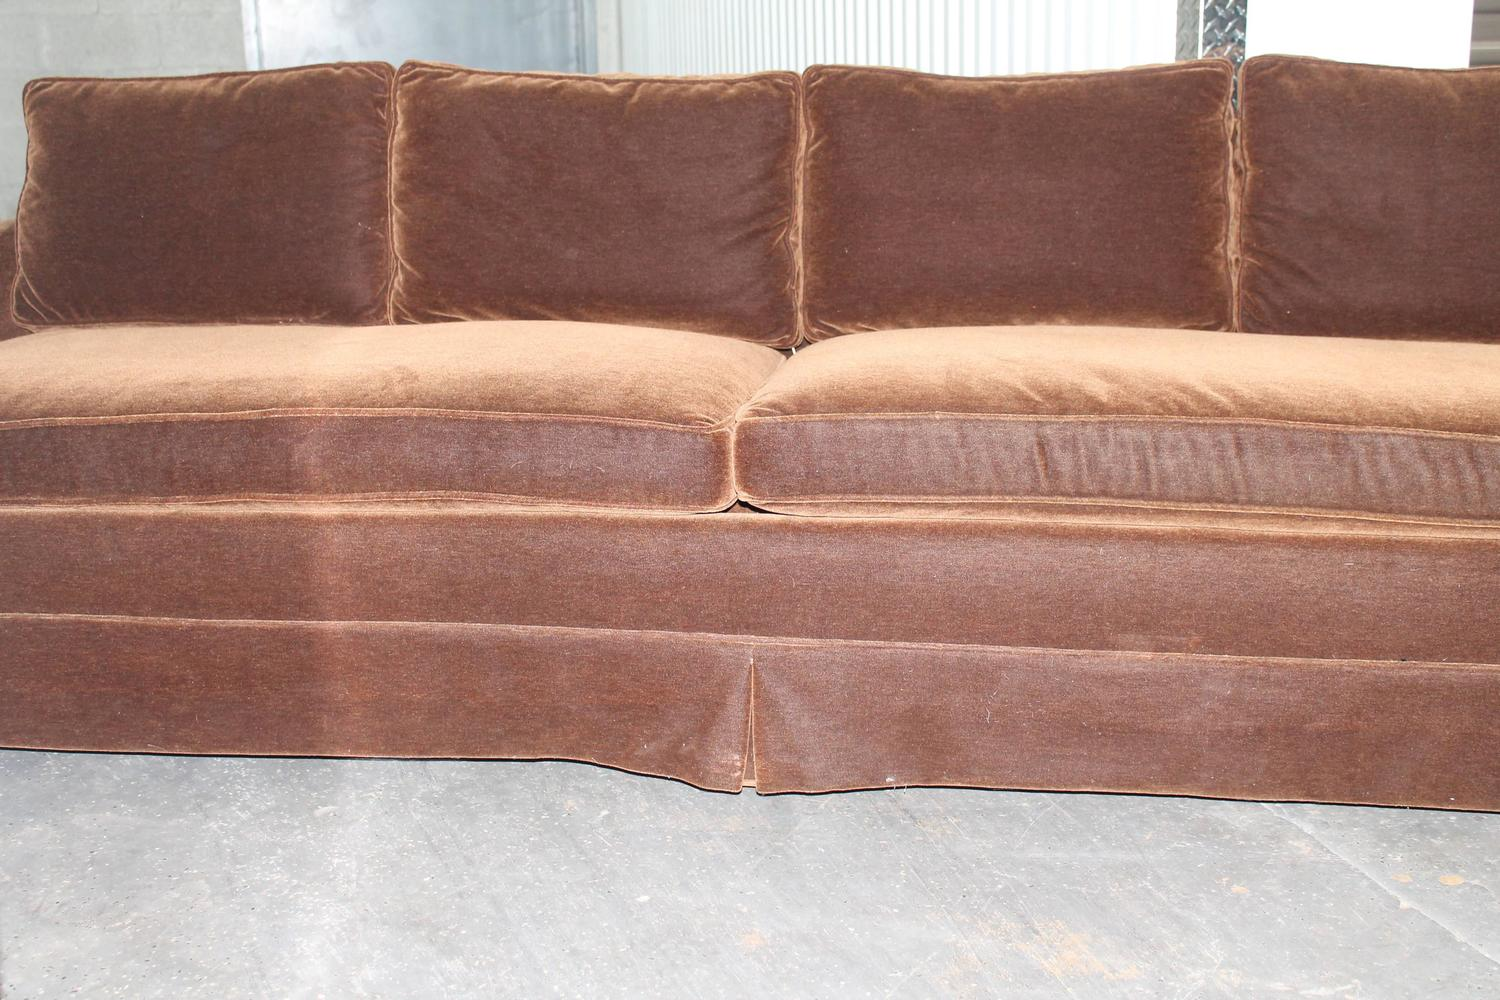 Mid Century Modern Grand Sofa Reupholstered in Chocolate  : IMG4872z from www.1stdibs.com size 1500 x 1000 jpeg 198kB